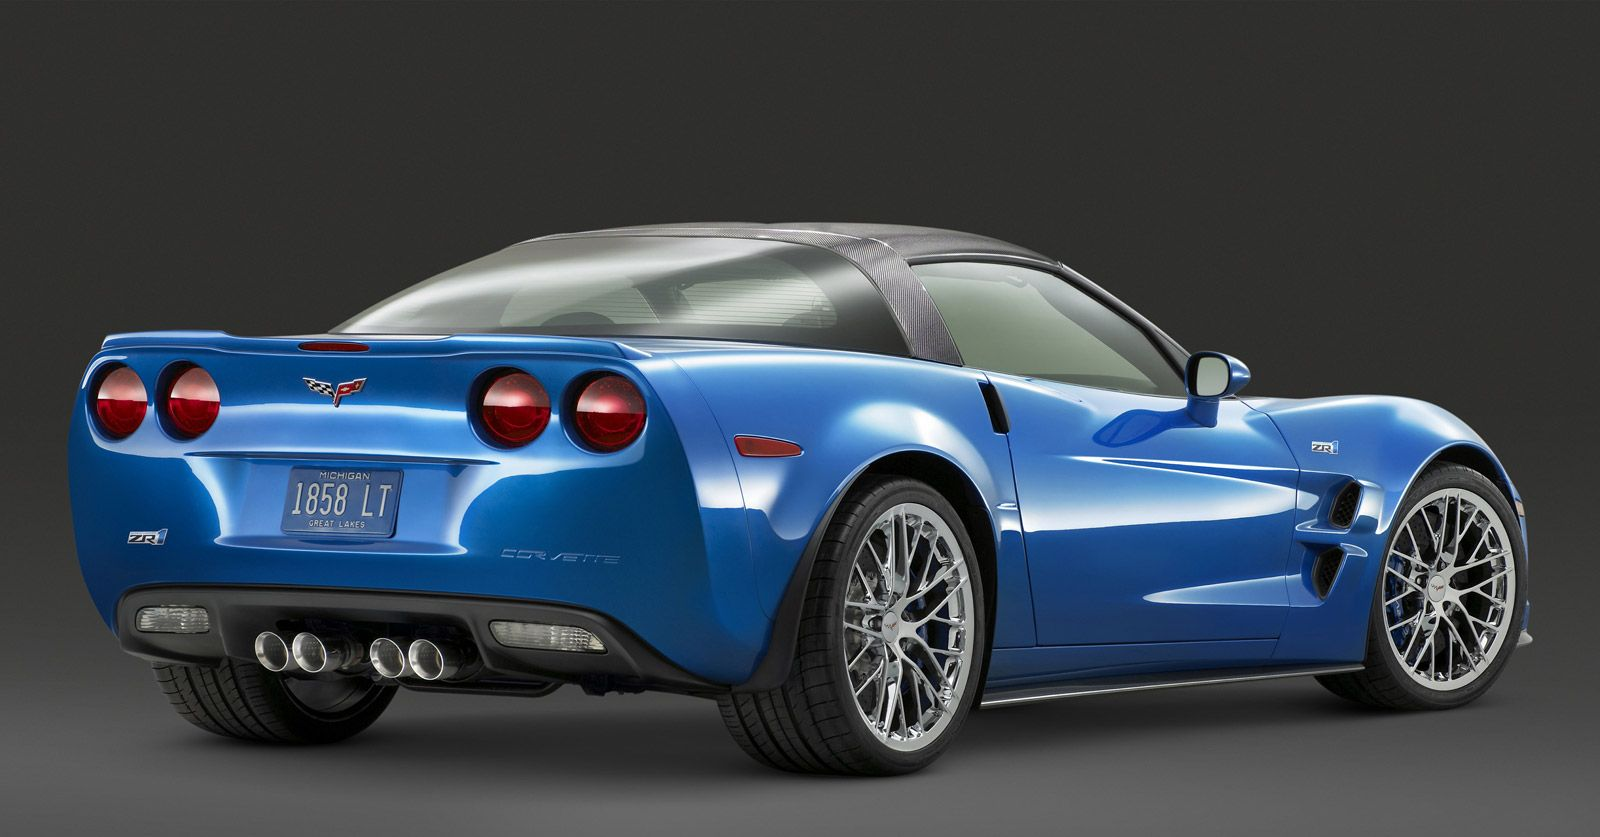 Chevrolet was working on a new mid engine platform for the next corvette zr1